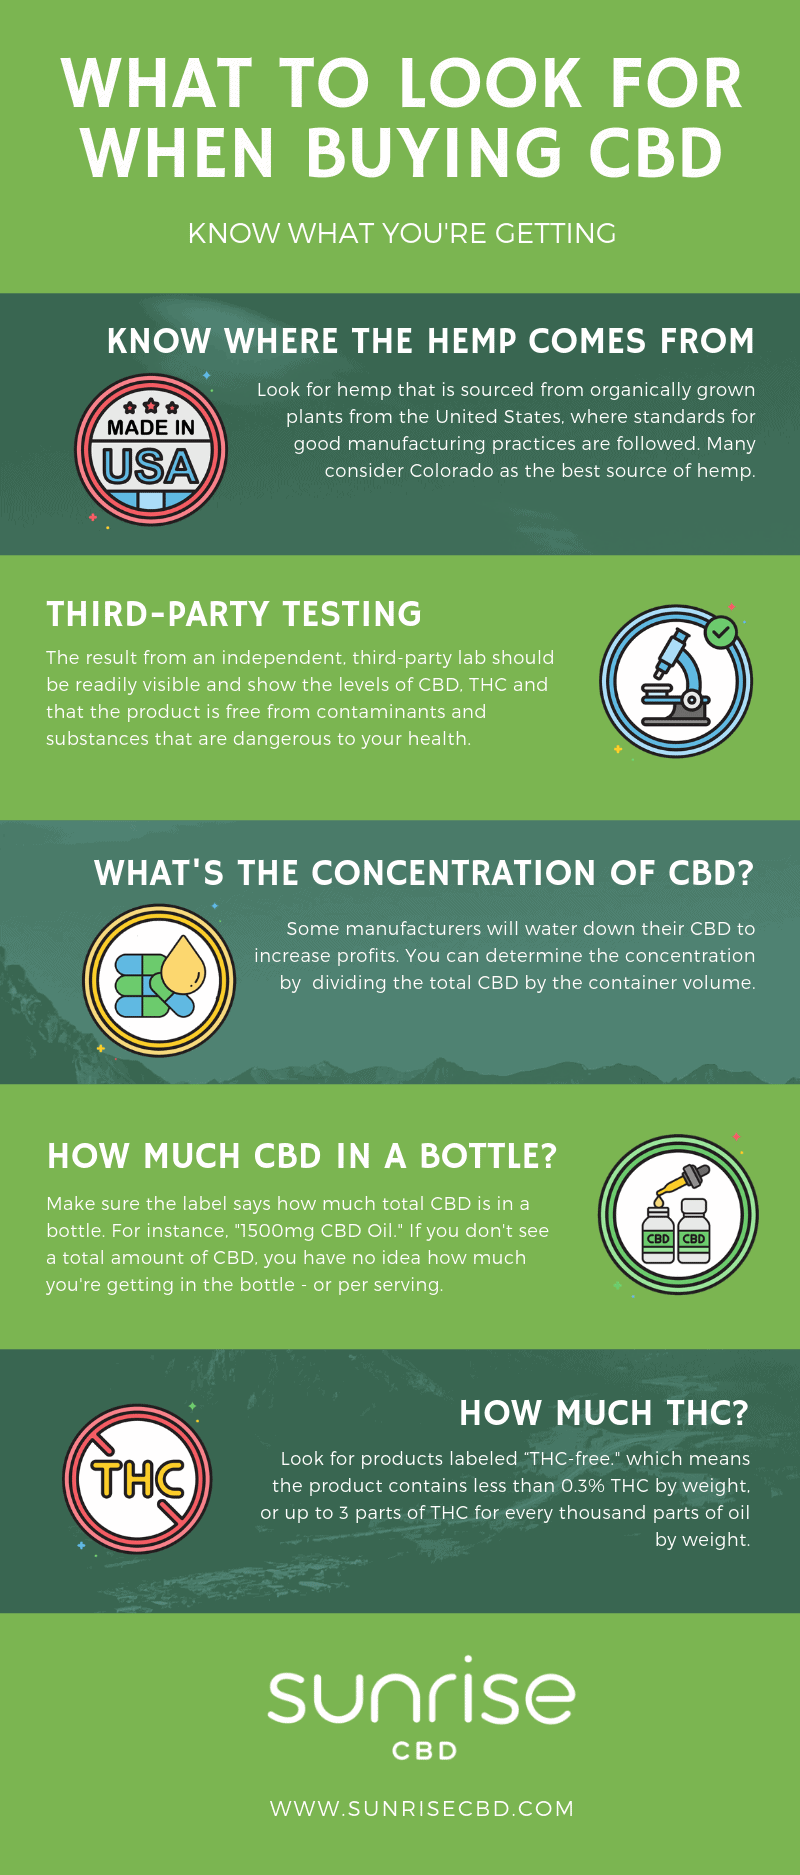 What to look for when buying CBD